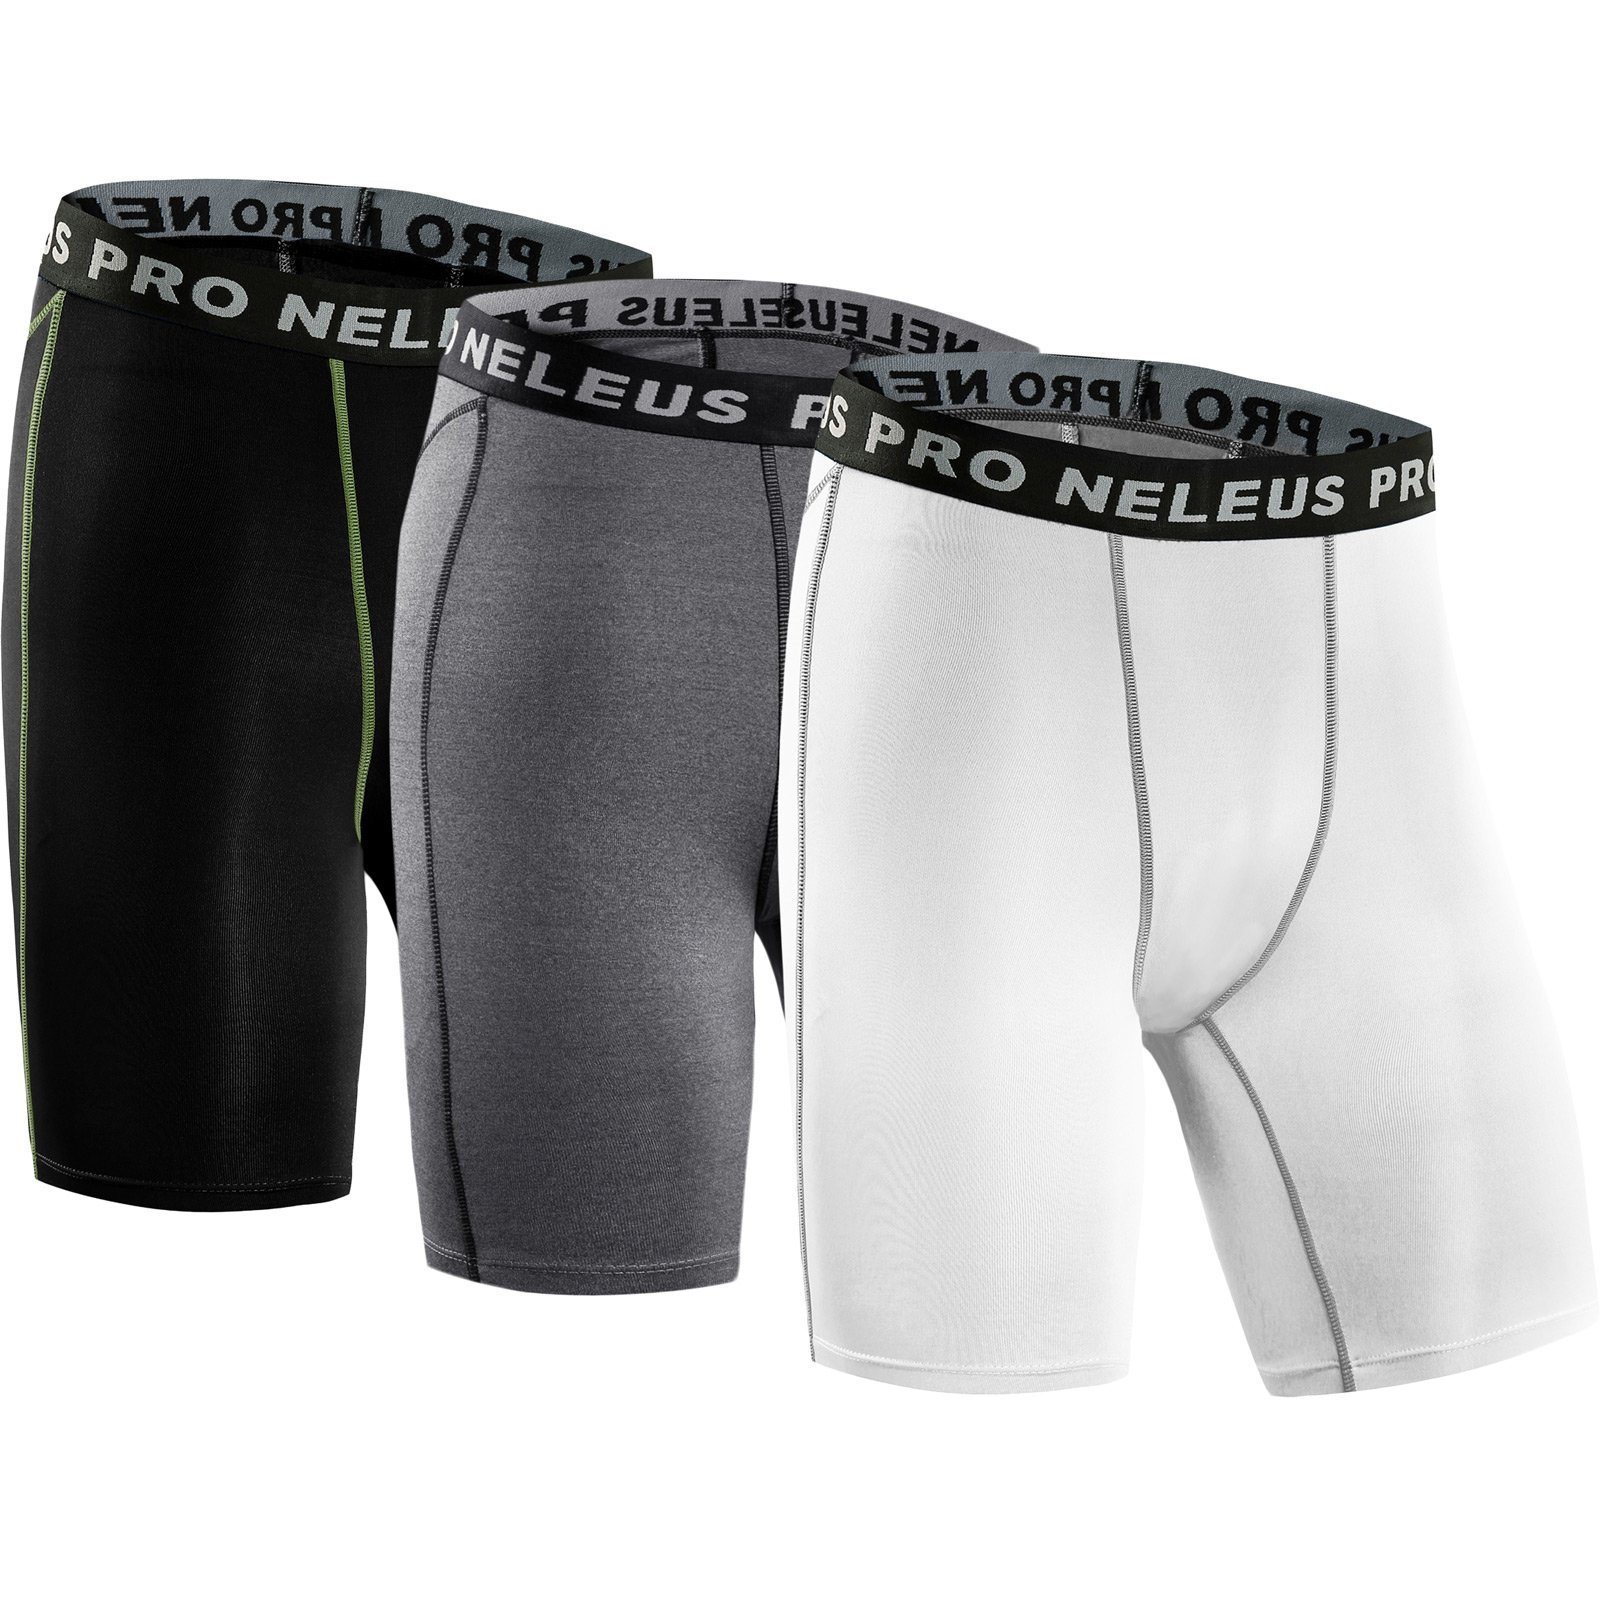 Neleus Men's 3 Pack Compression Short,047,Black,Grey,White,US XL,EU 2XL by Neleus